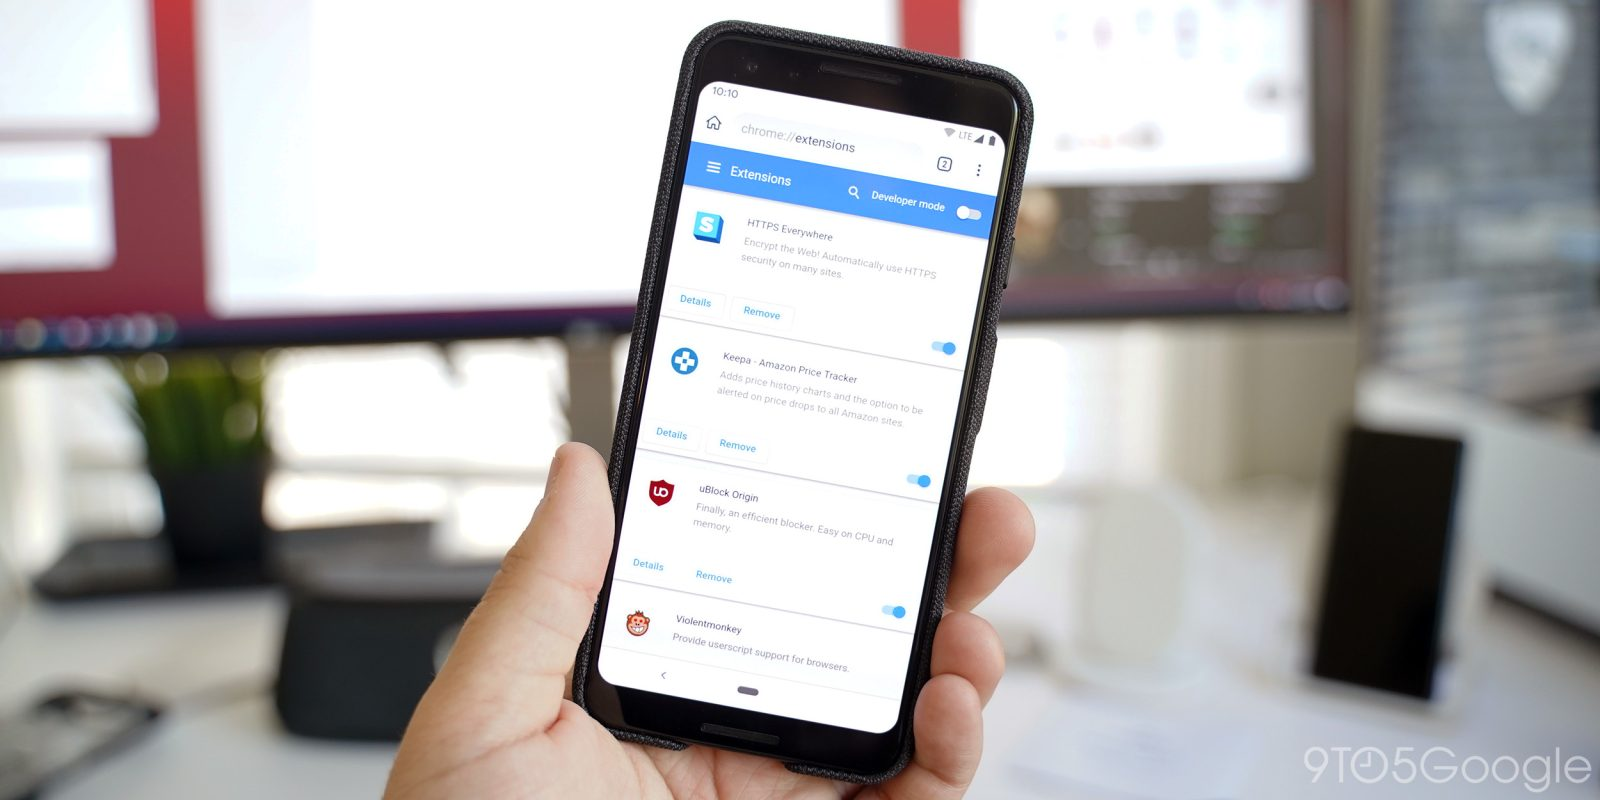 Hands on: Kiwi Browser w/ Chrome extensions on Android - 9to5Google